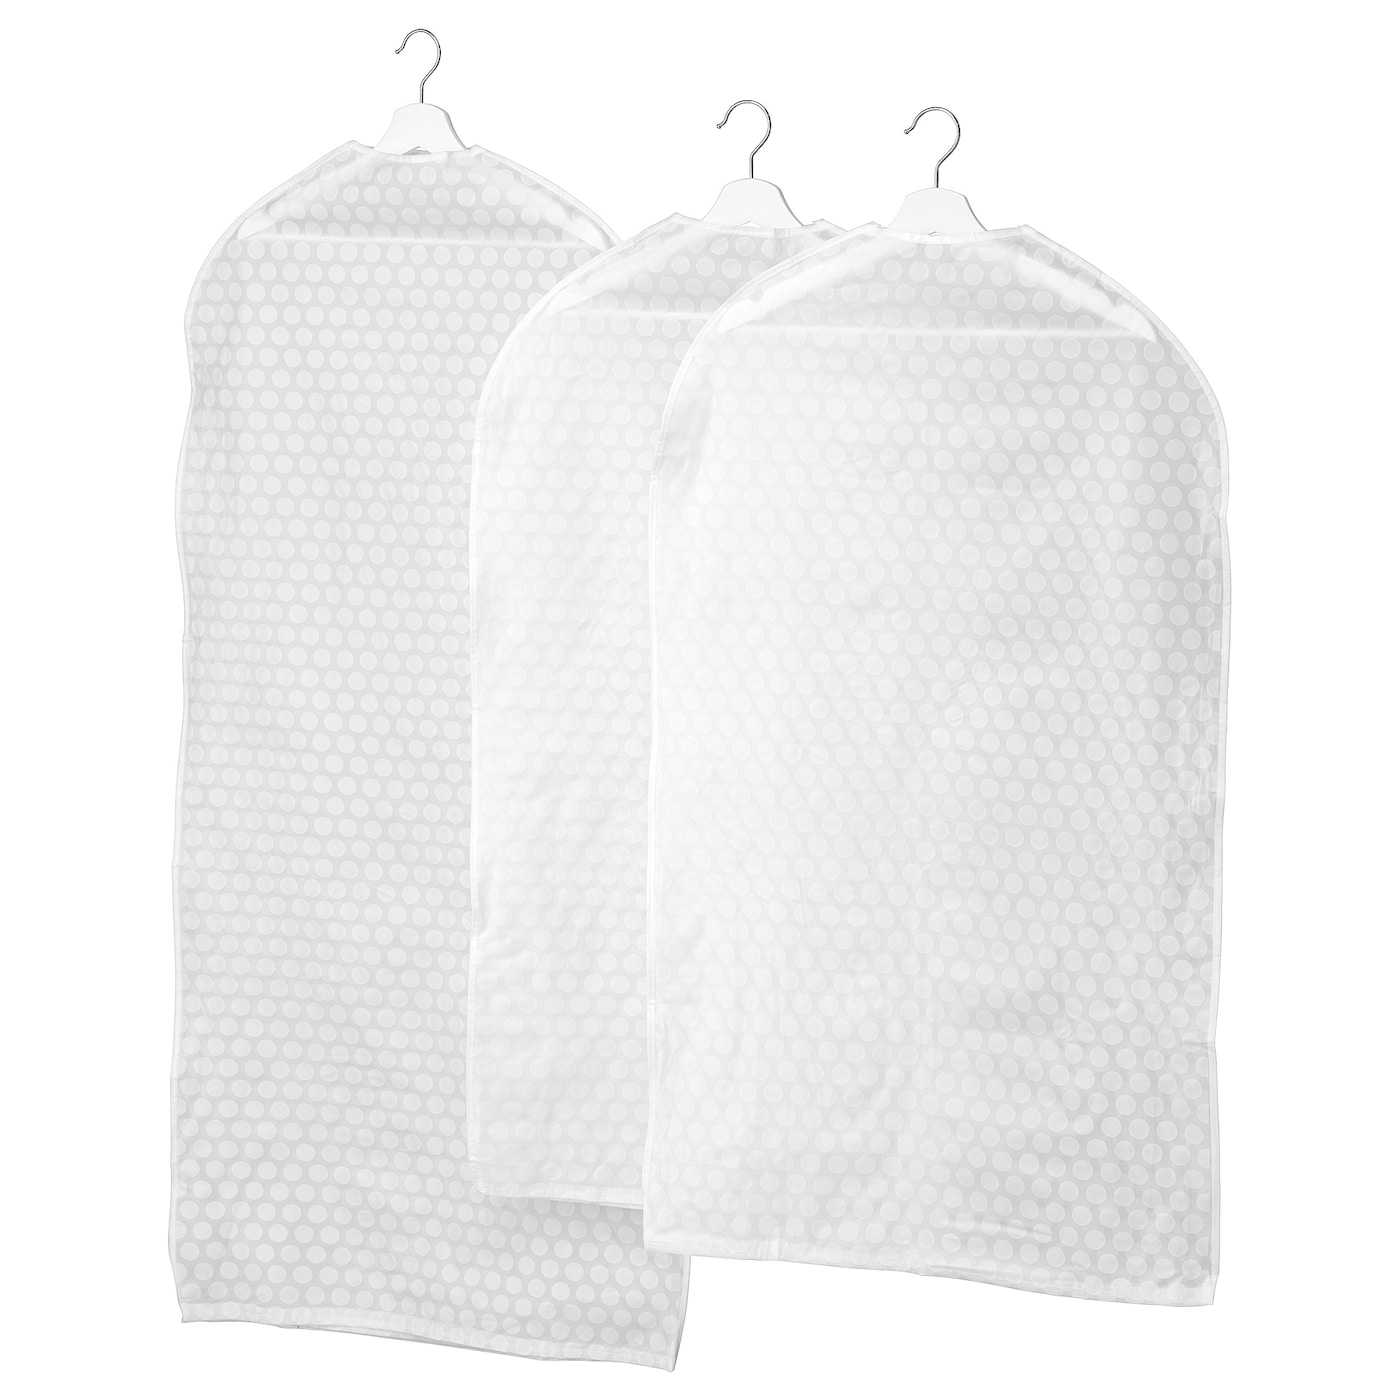 IKEA PLURING clothes cover, set of 3 Protects your clothes from dust.